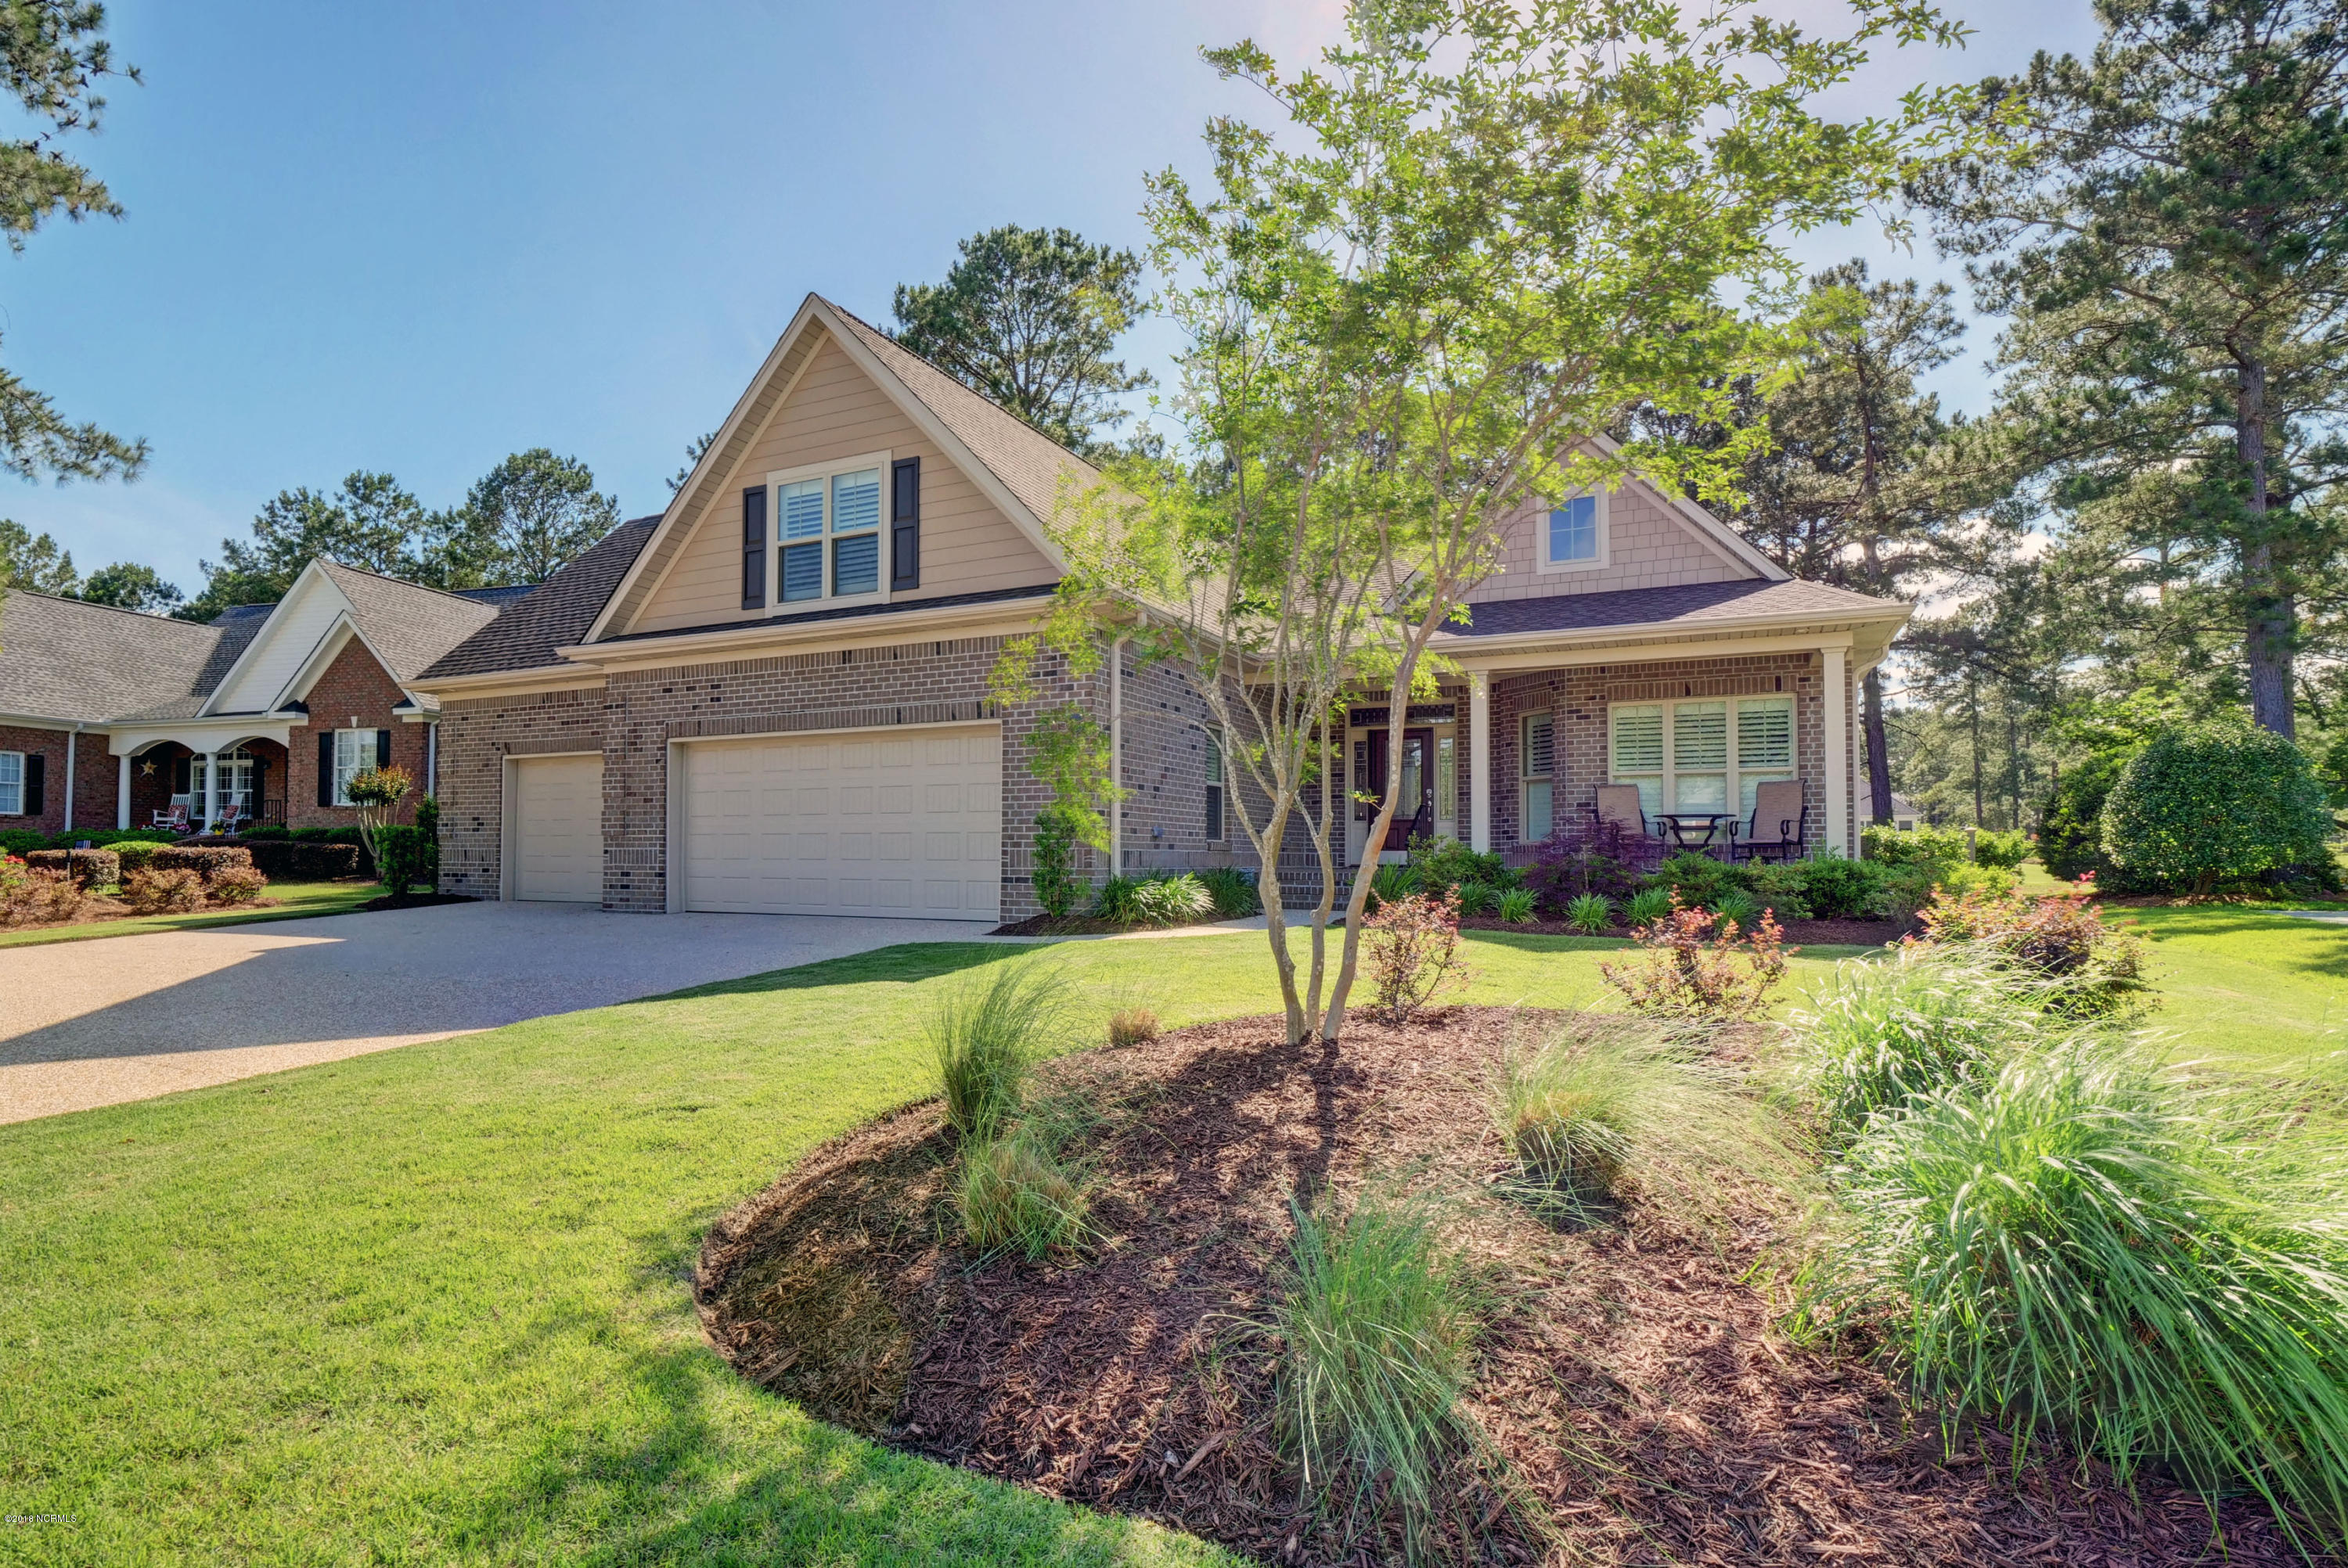 Real Estate for Sale in the Wilmington, NC Area